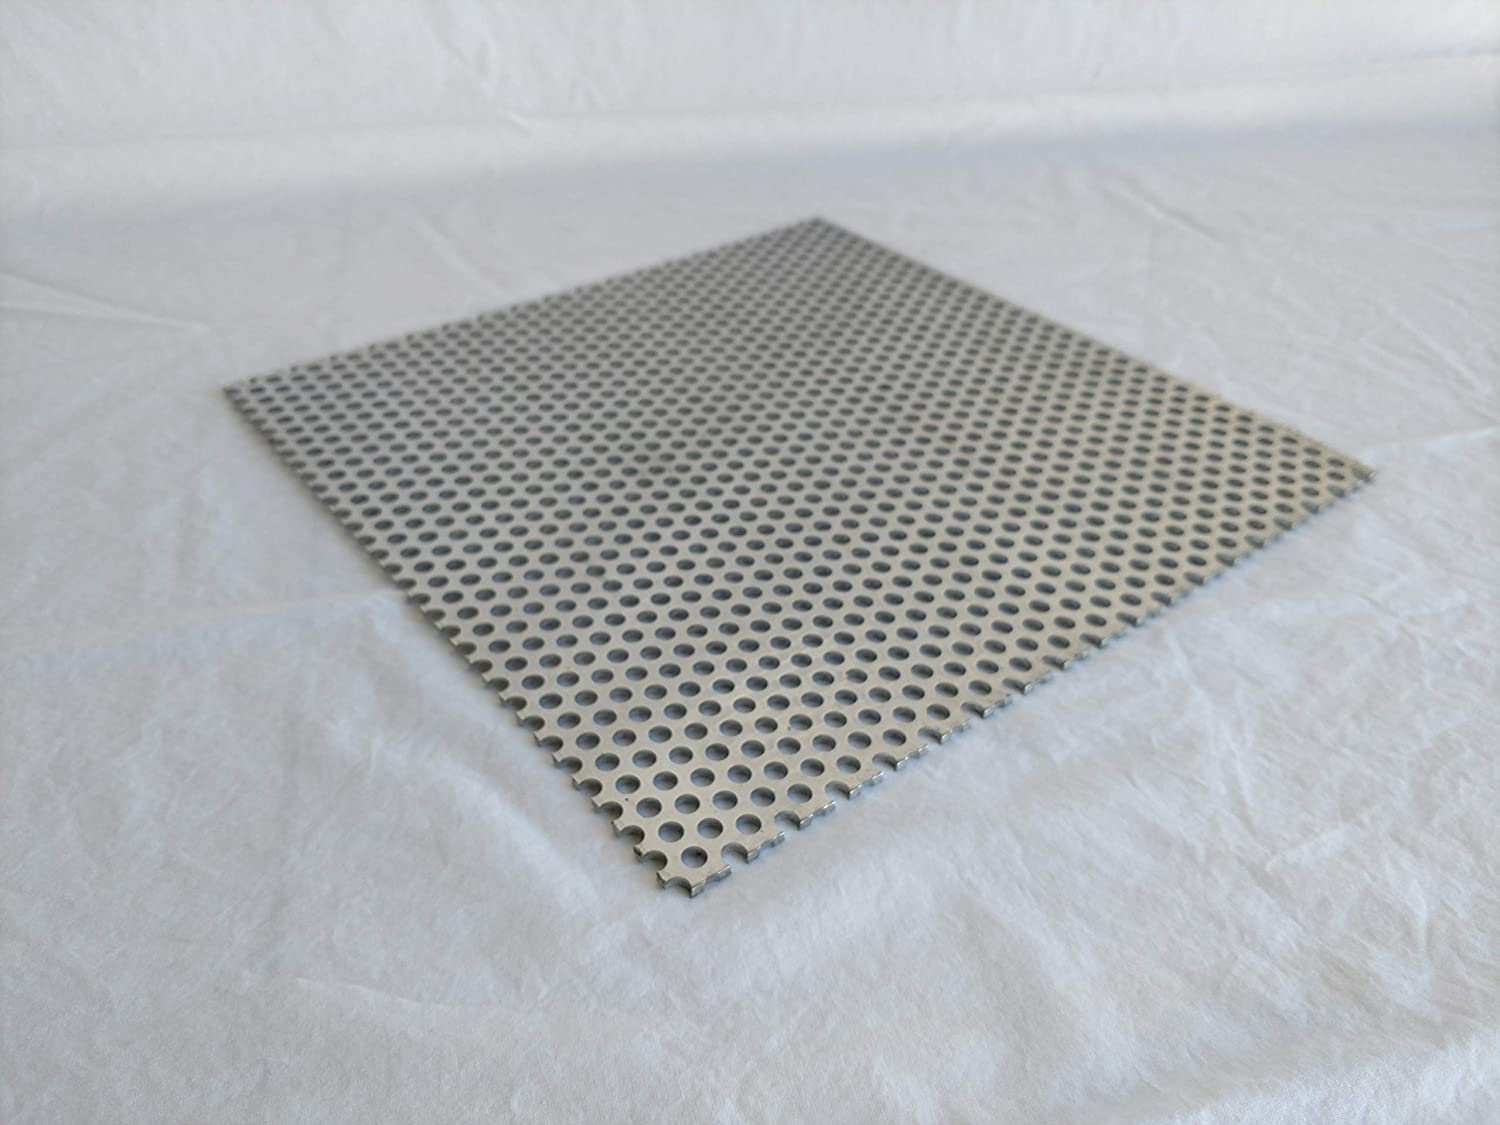 Aluminum Perforated Sheet 12' x 48' .063 1/16' Thickness 1/4' Hole 3/8' Stagger Kay Enterprise